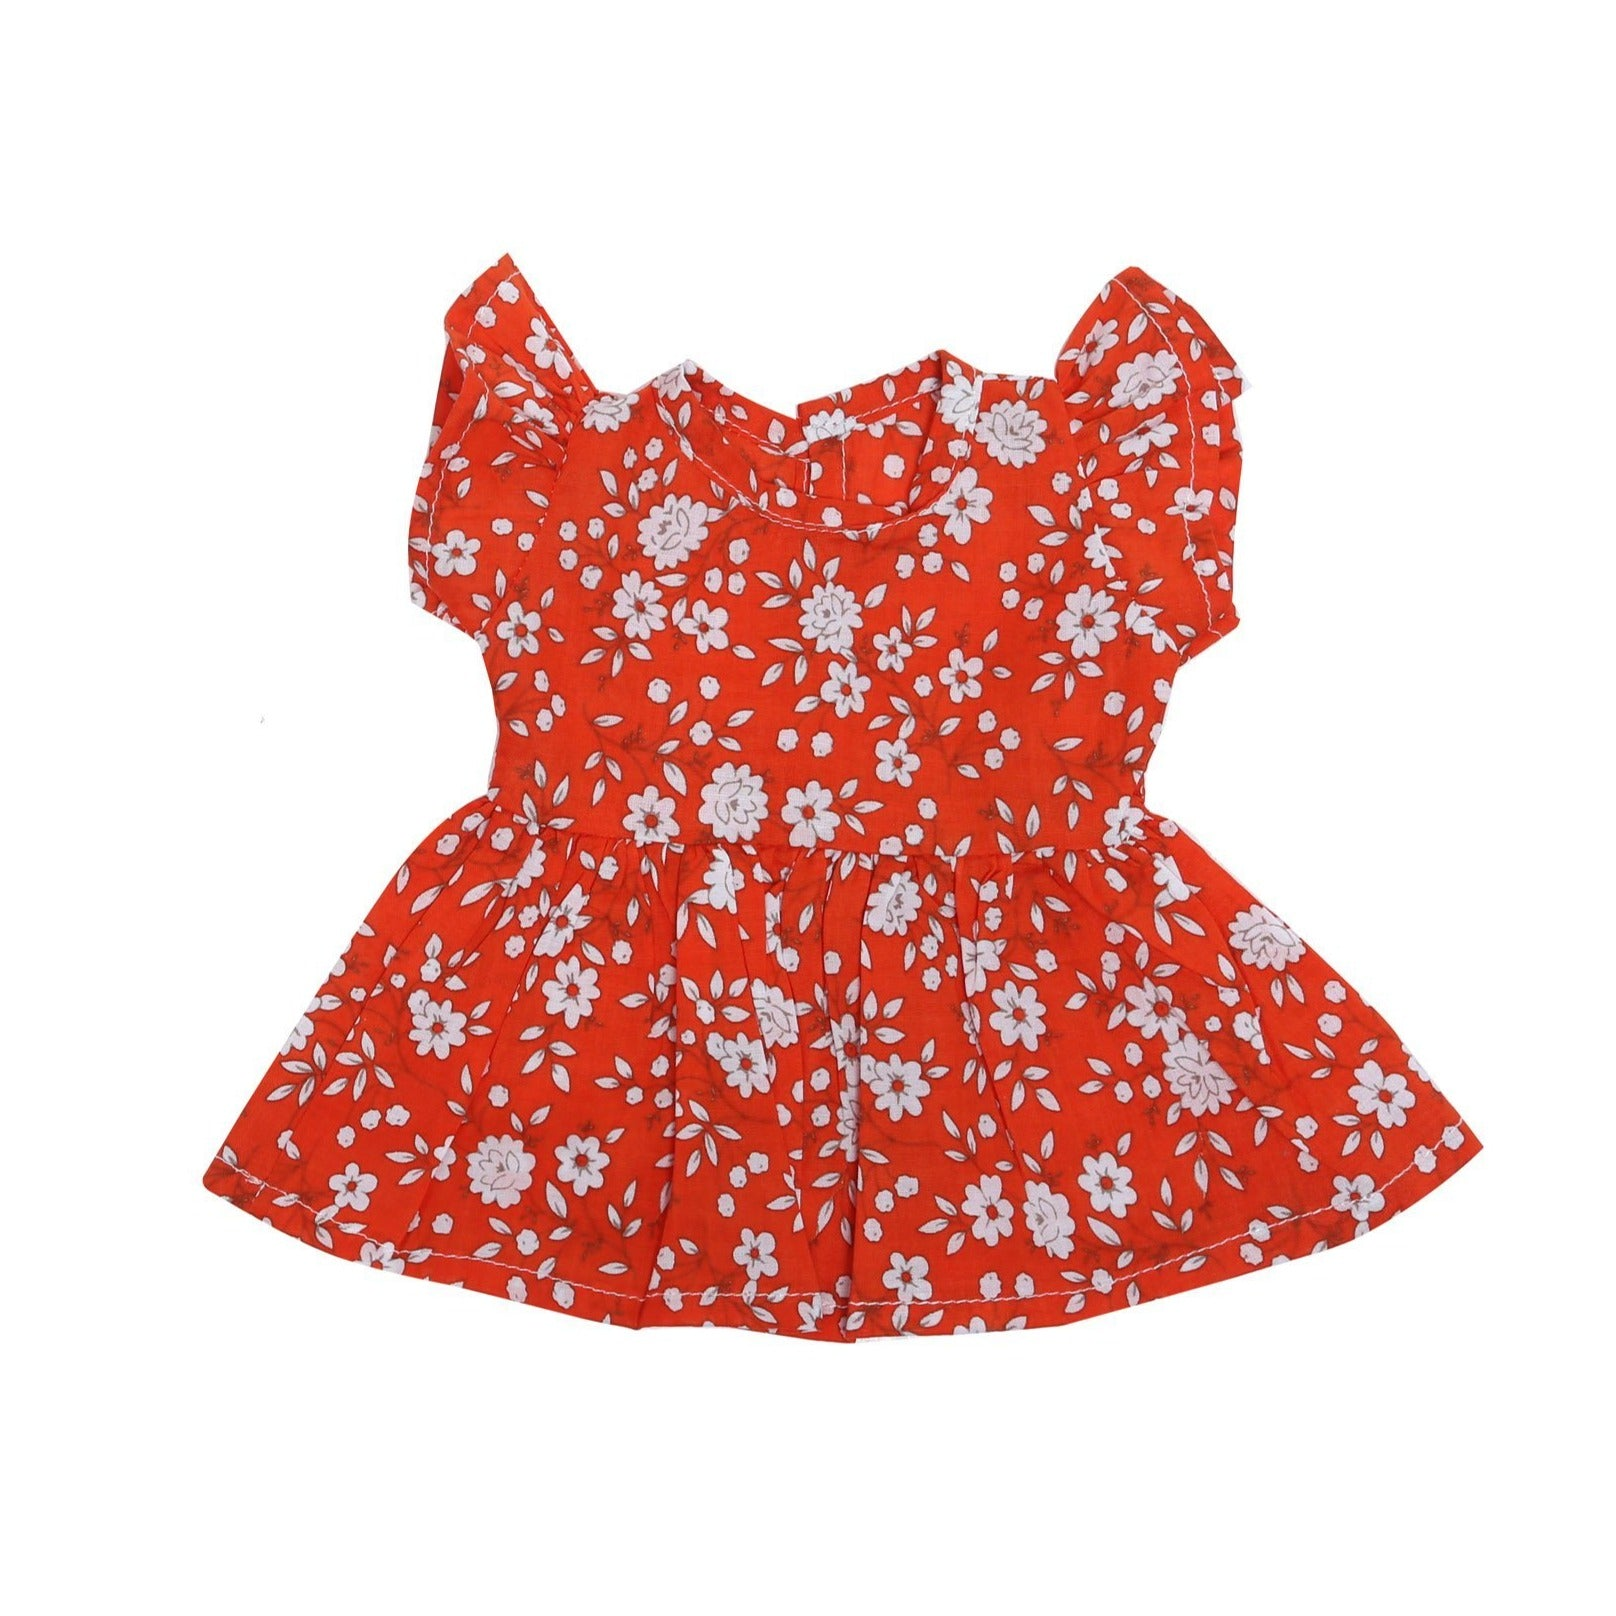 Coco and Ginger - Doll Dress - Joni - Coral Whisper Girls Coco and Ginger